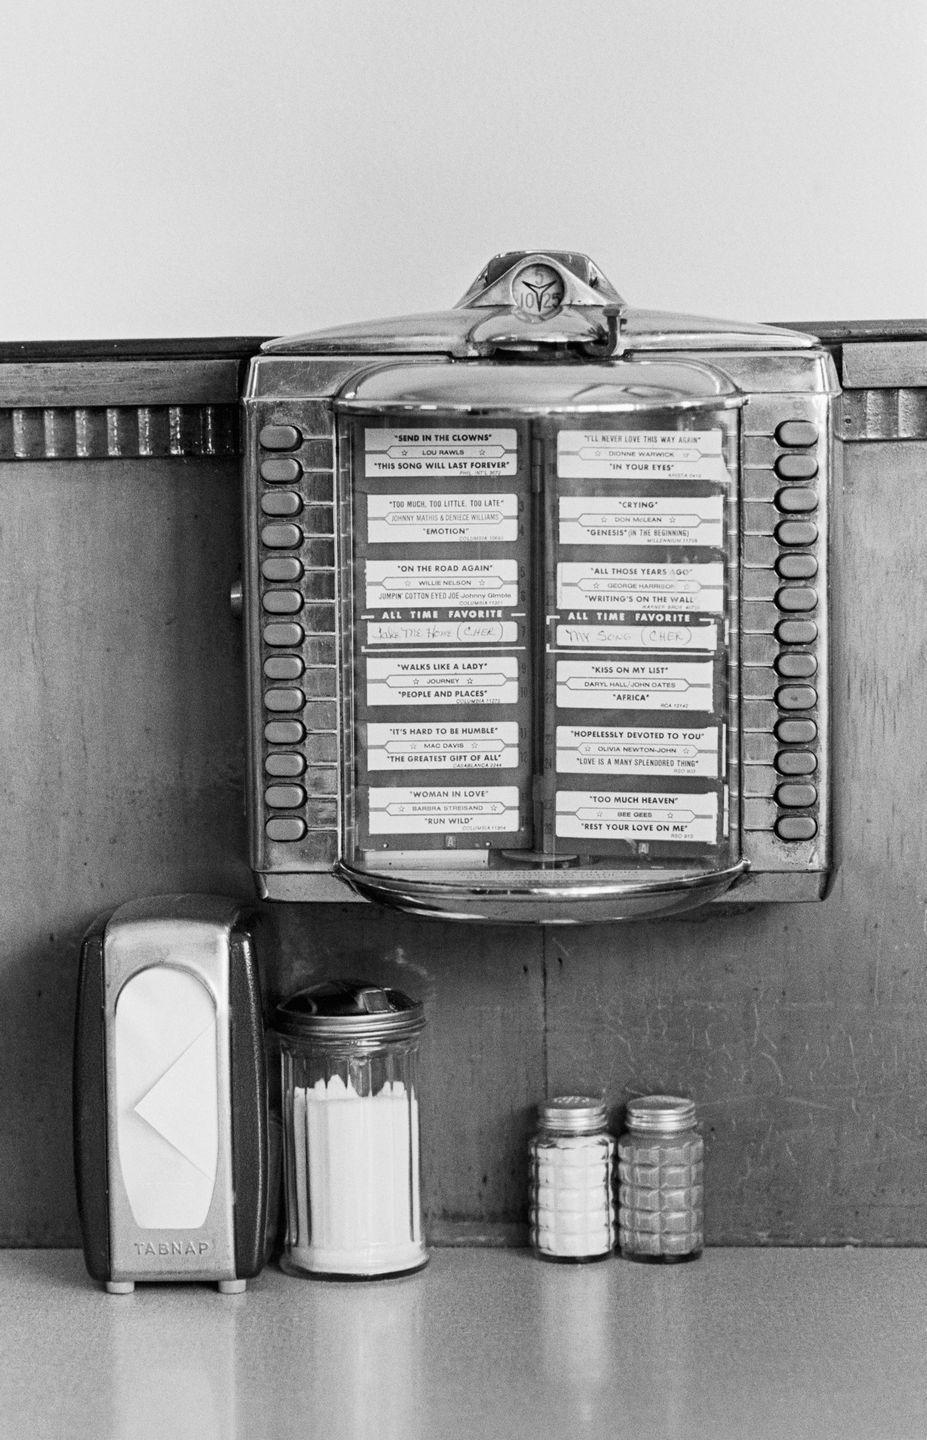 <p>Back in the day, mini jukeboxes were often found at the tables of diners and other restaurants. Customers could pay to play their favorite music at their table. These are rarely found anymore. </p>